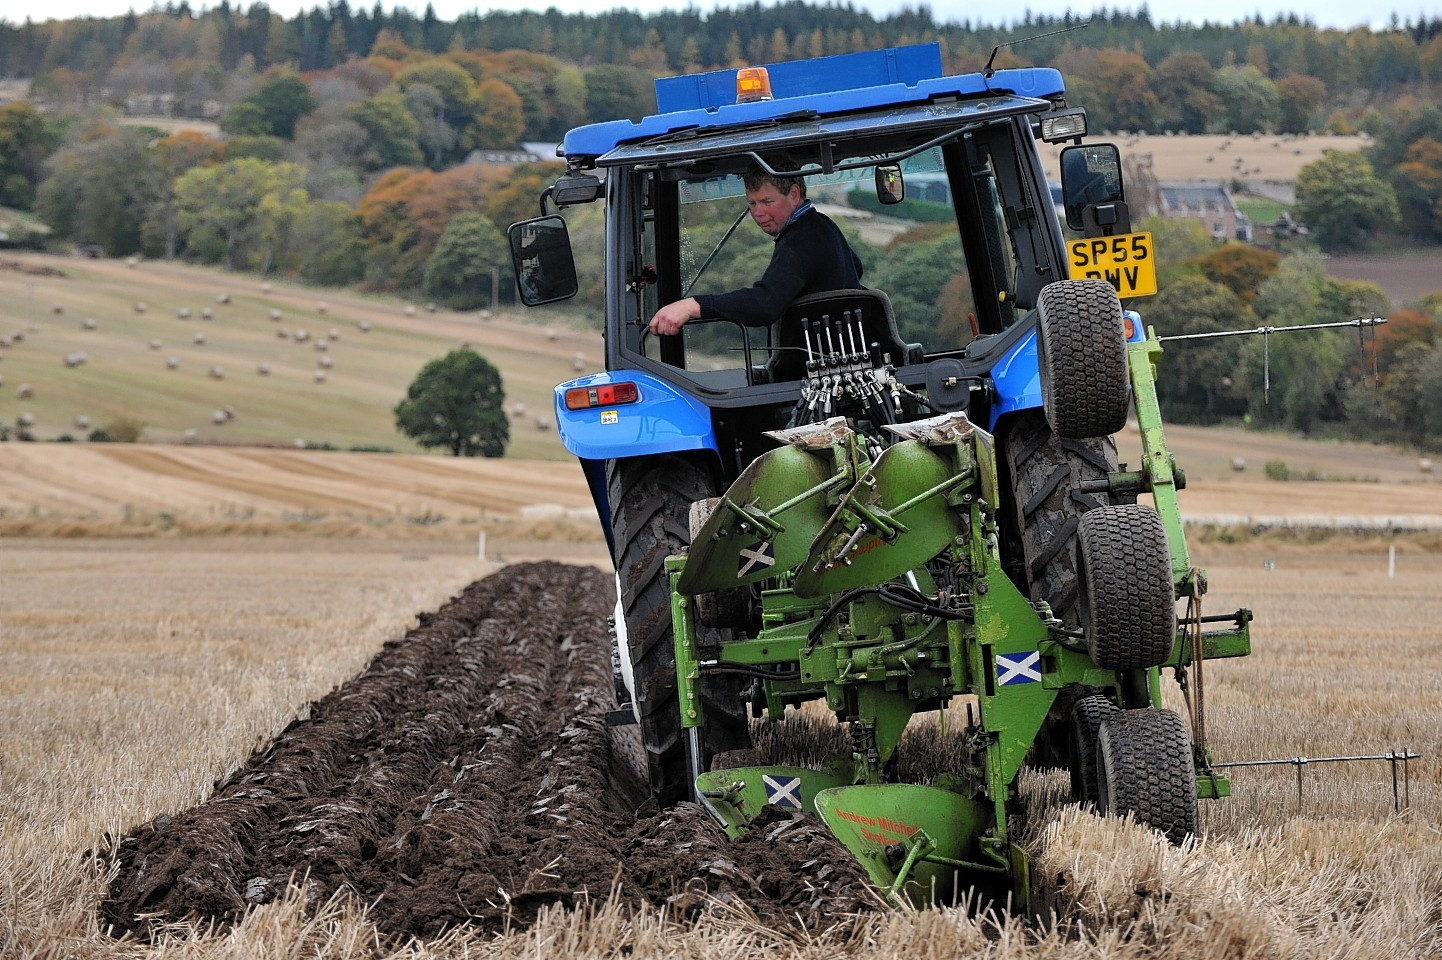 Preparations are under way for the Scottish Ploughing Championships